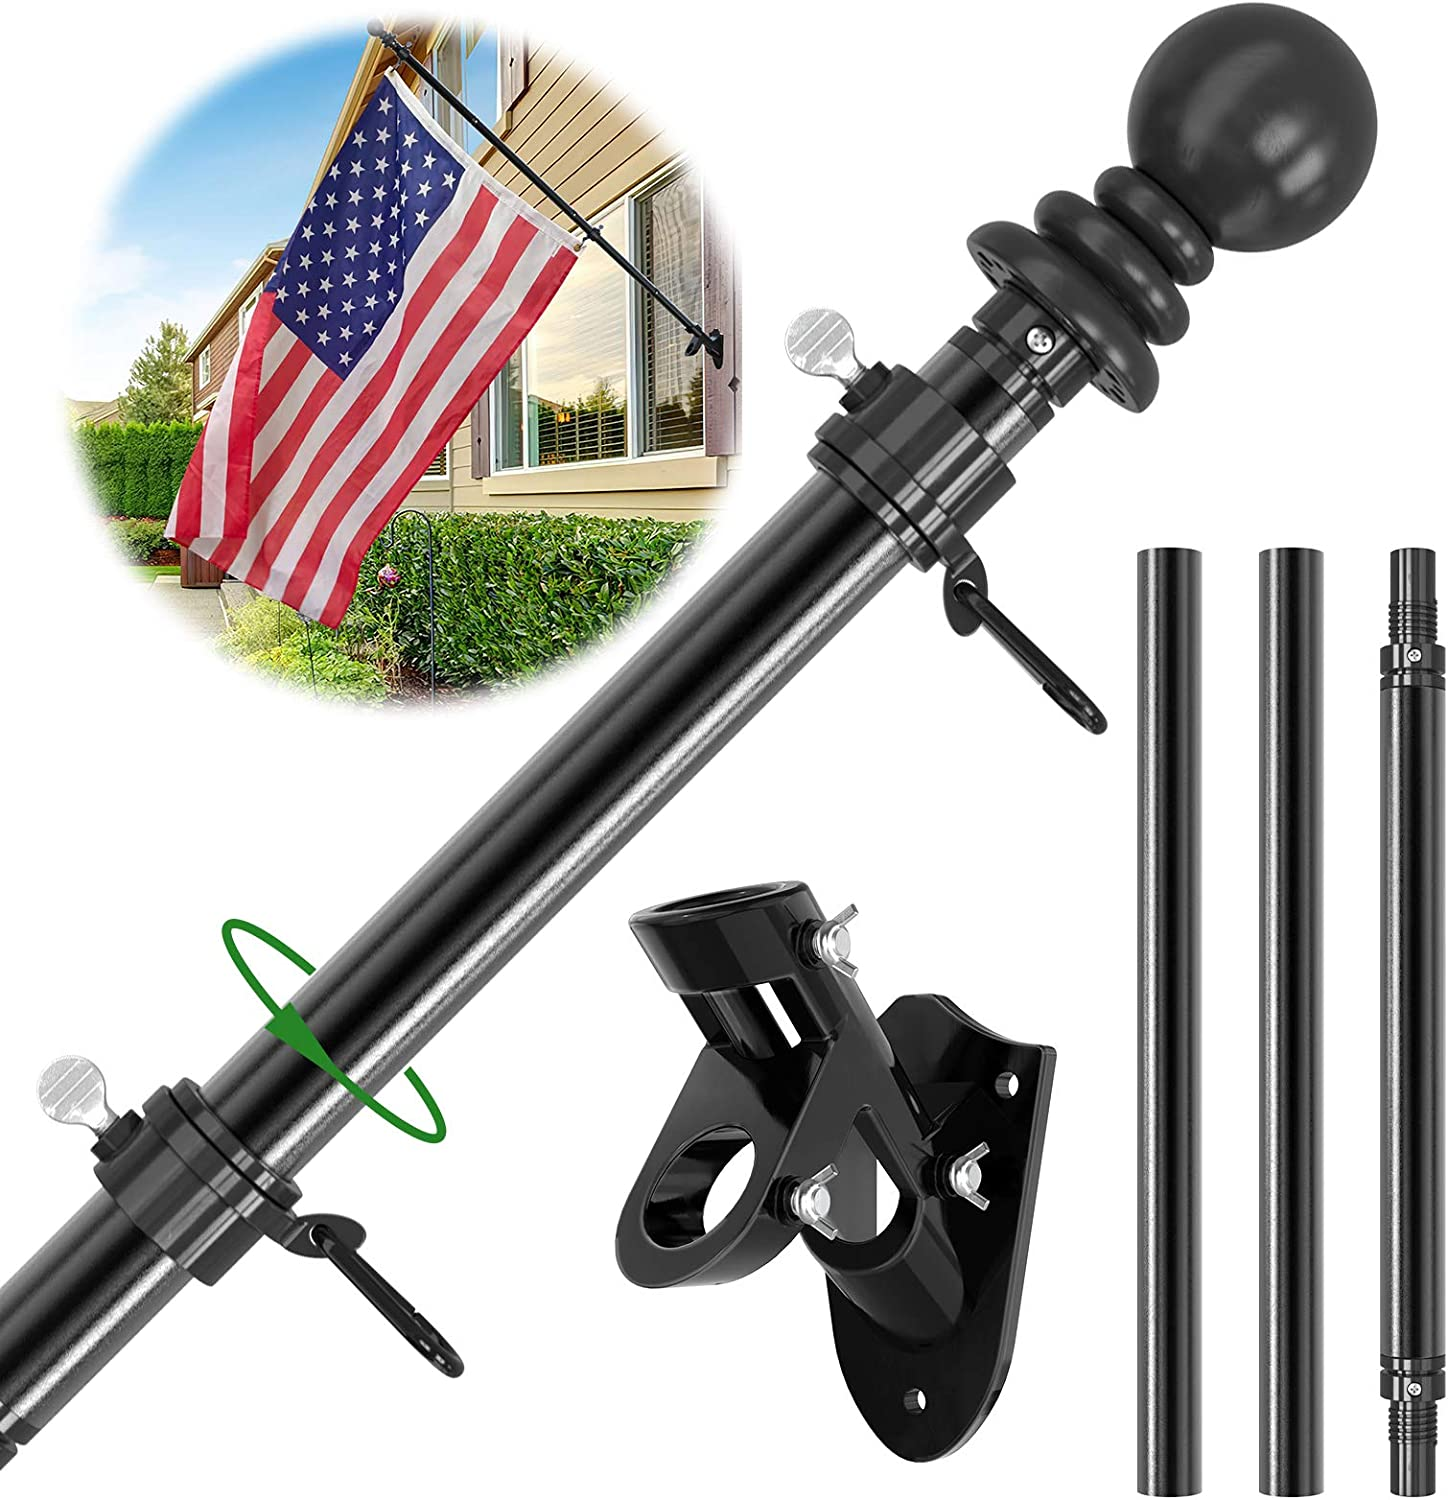 Flag Pole Long-awaited Kit 5 FT House Outdoor Aluminum for Max 49% OFF Metal